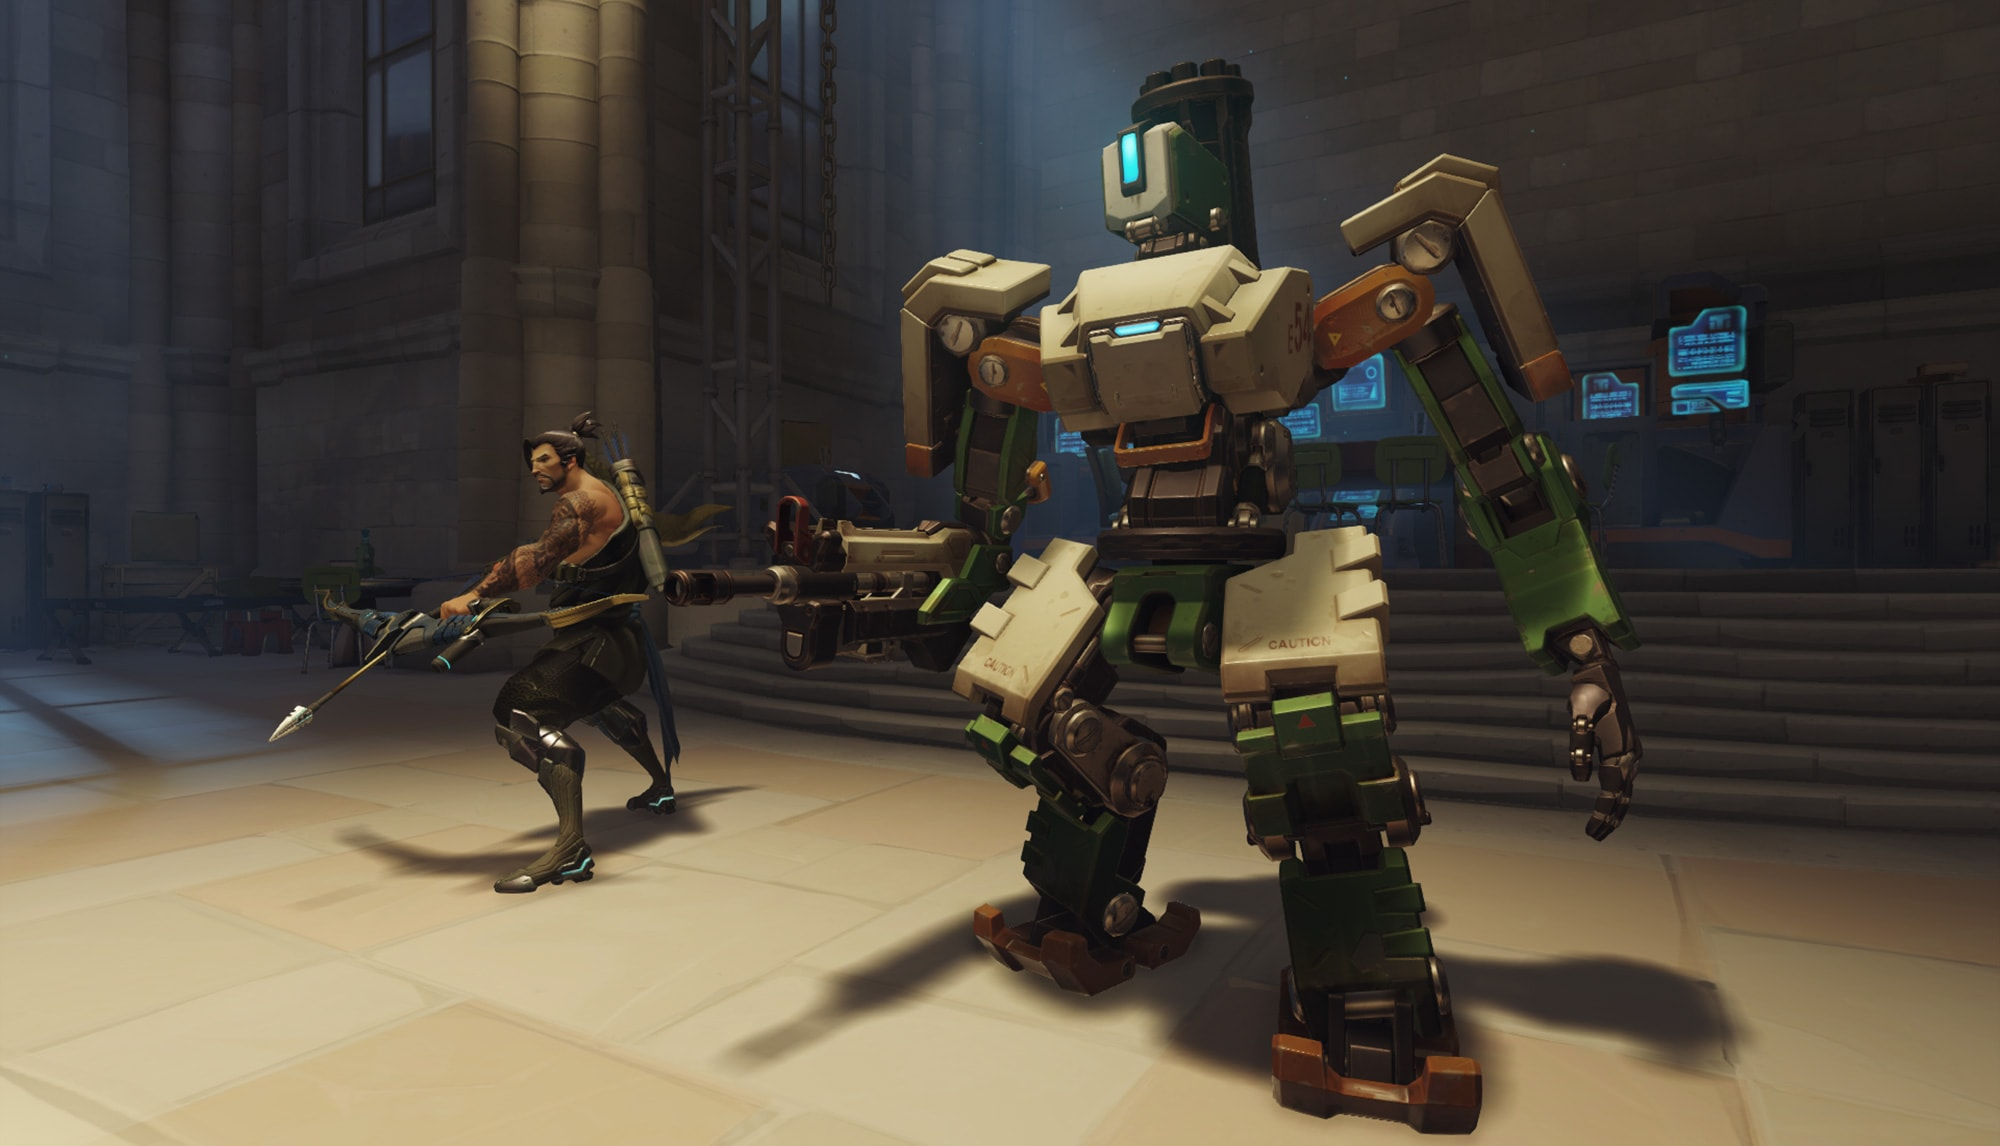 Overwatch : Bastion Wallpapers